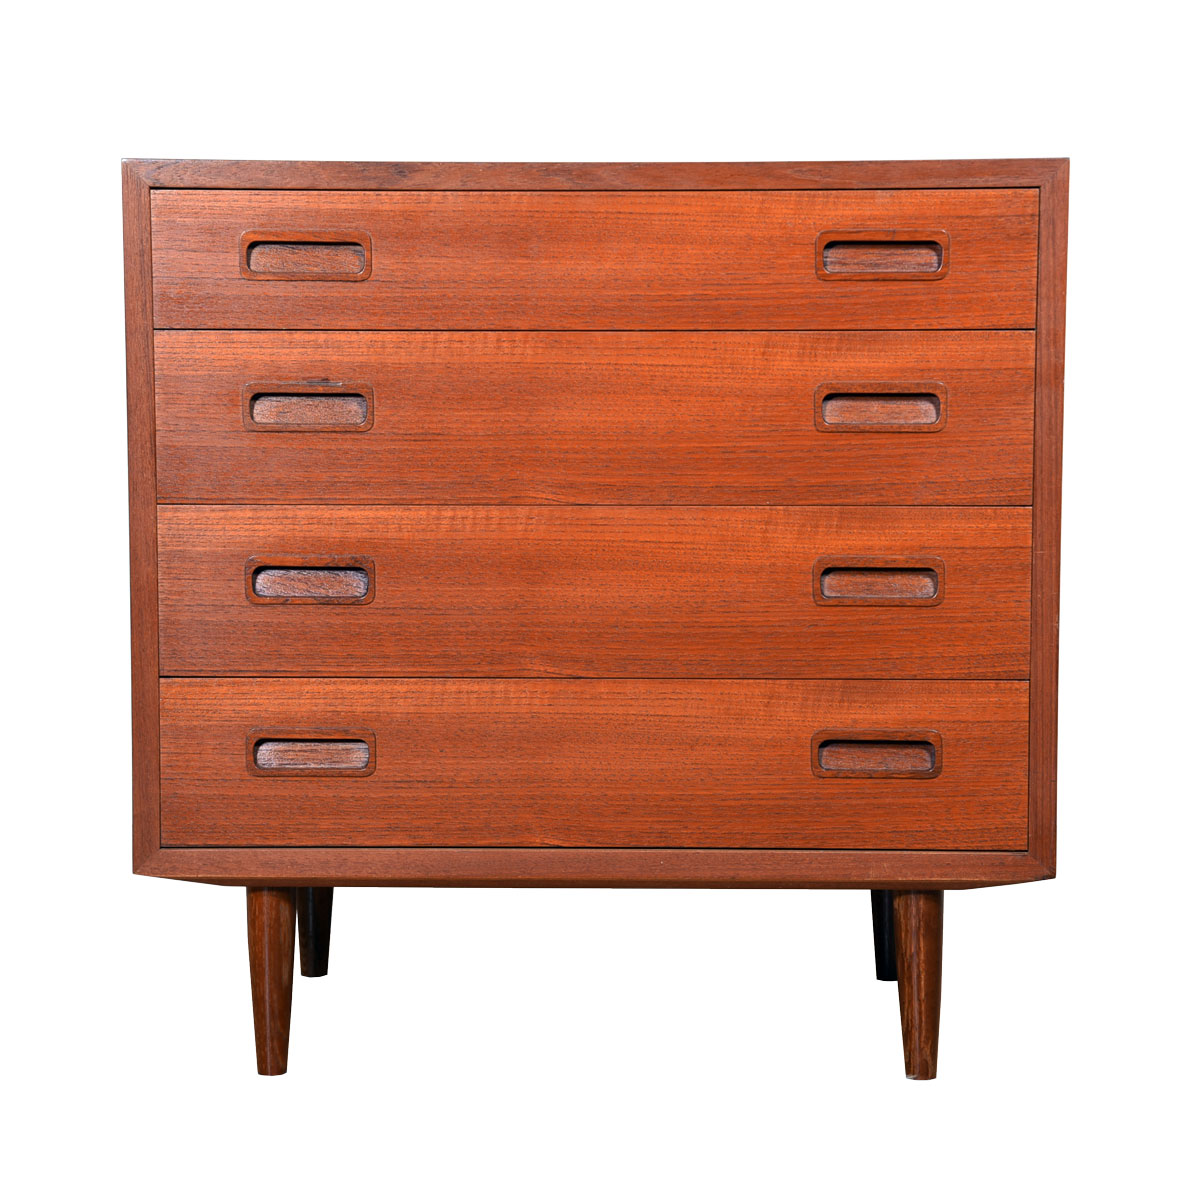 Compact Danish Modern Chest of Drawers with Bookcase Top in Teak